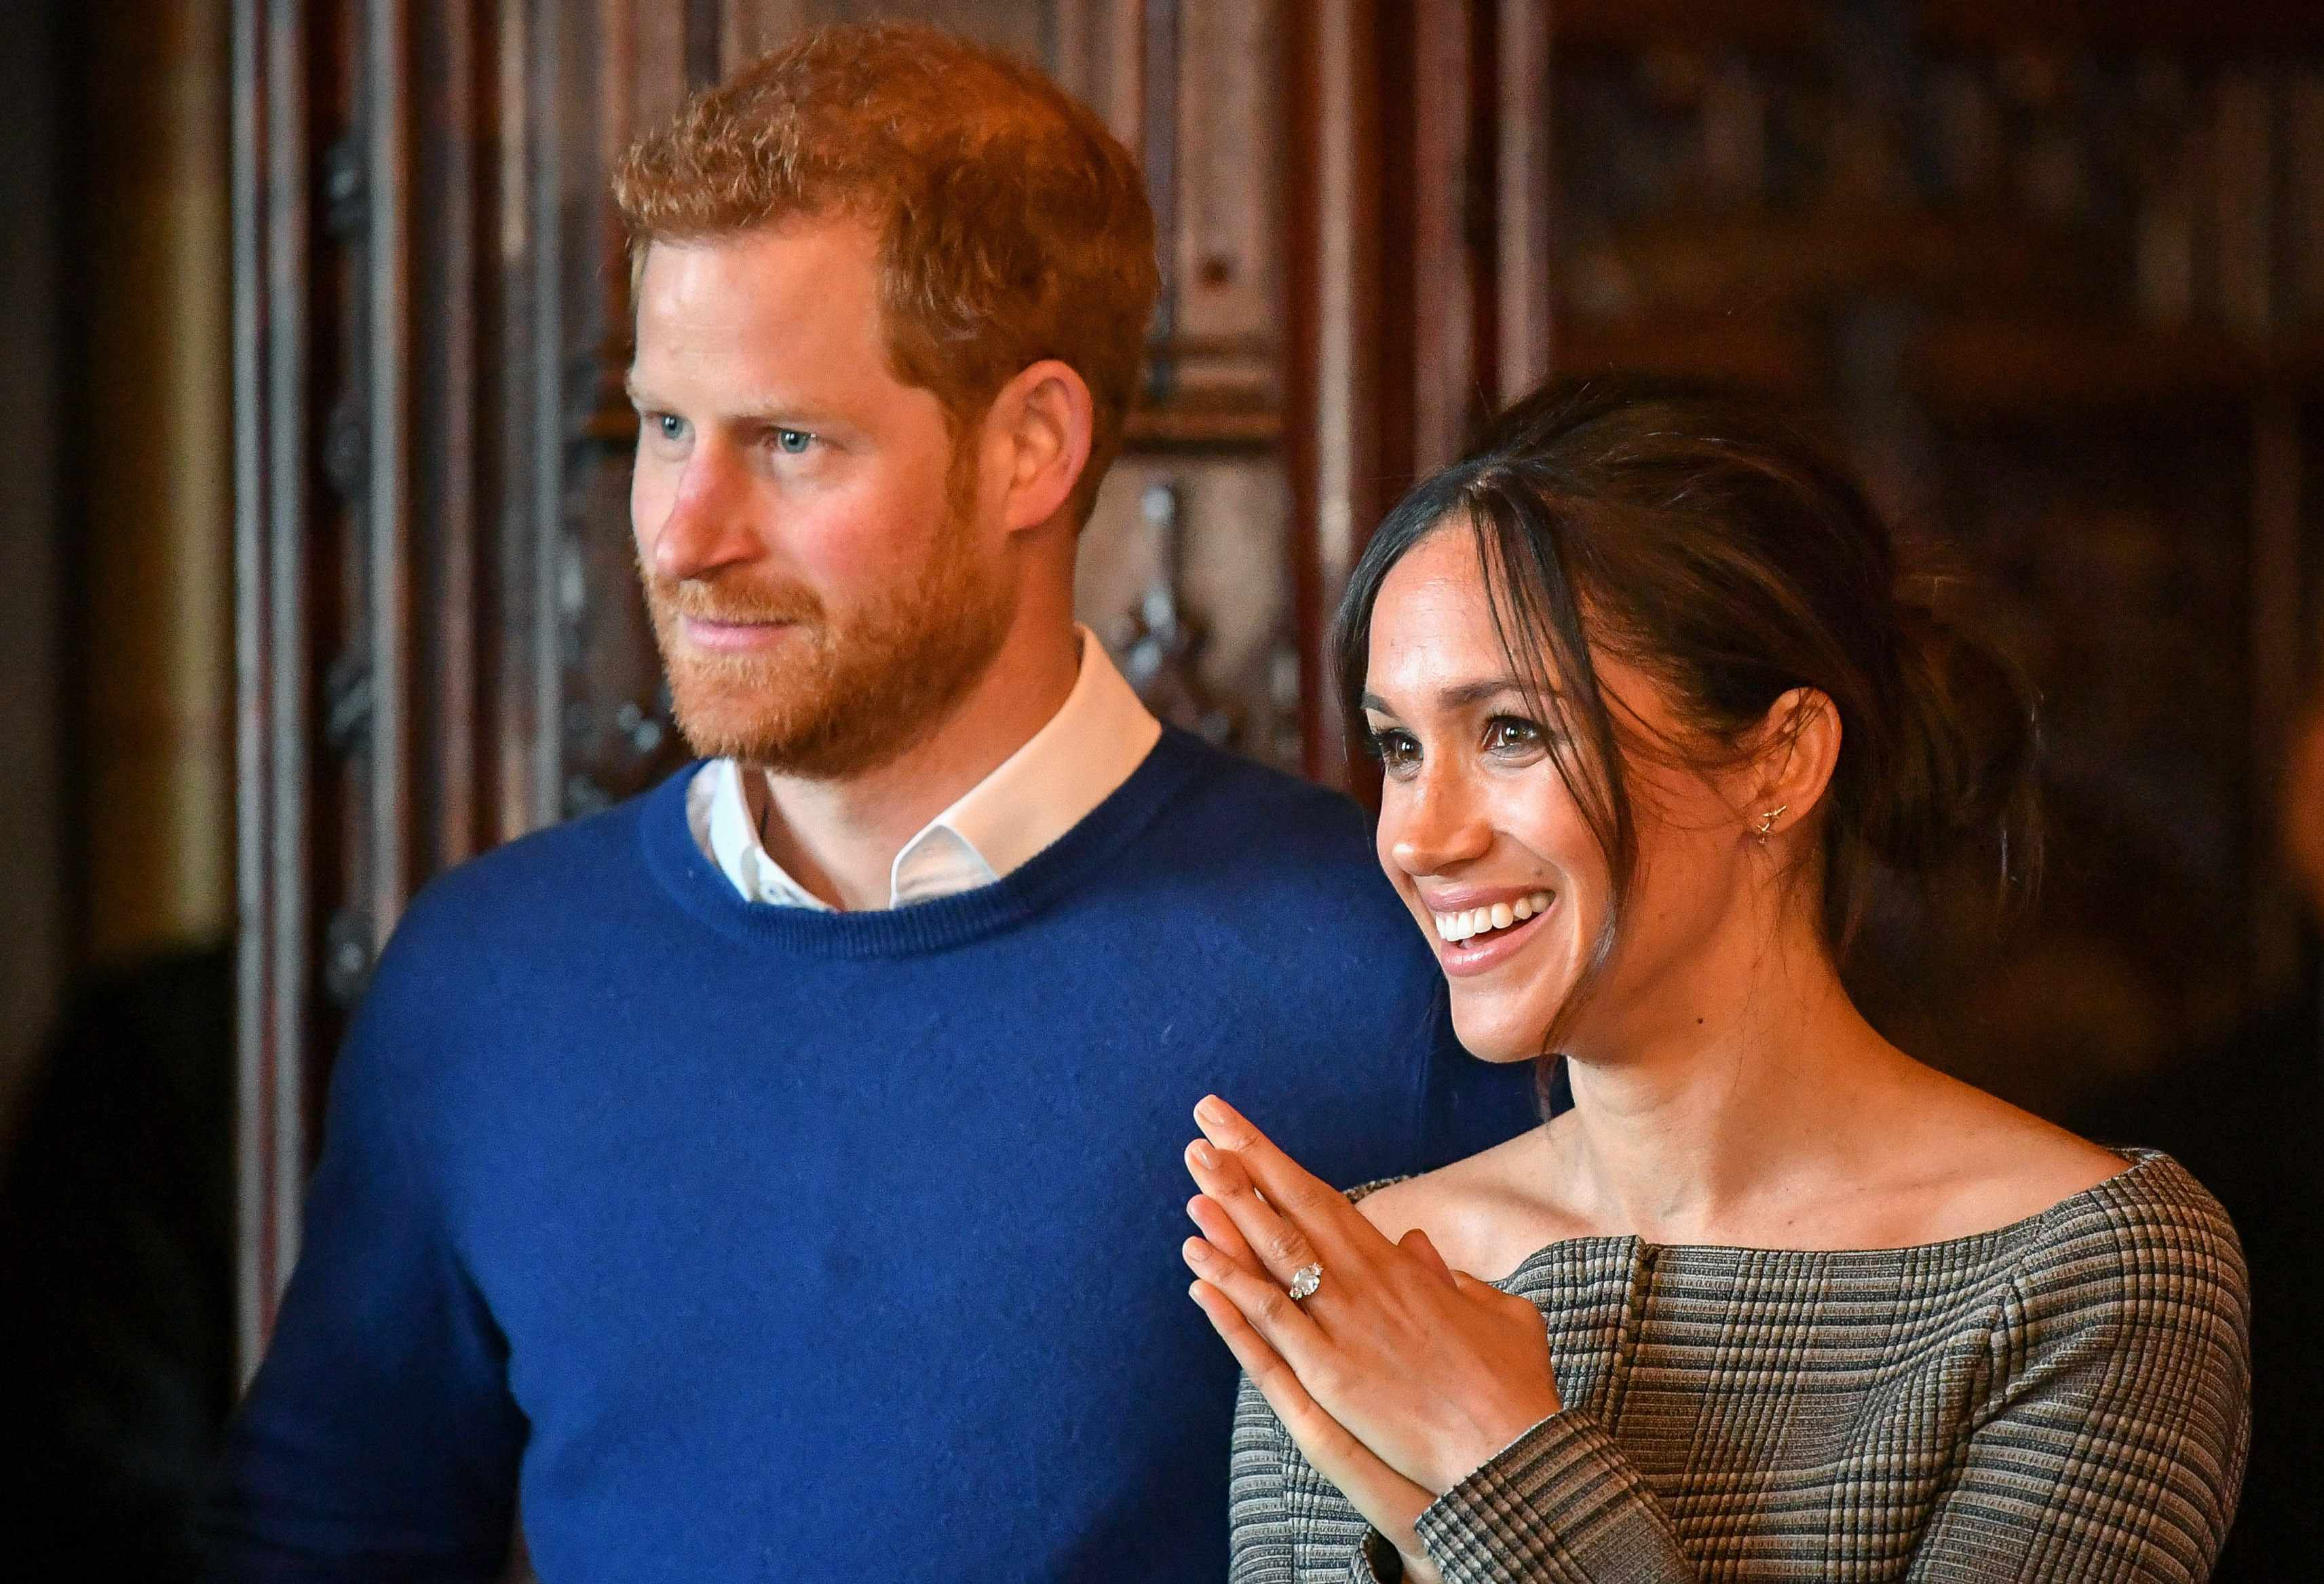 CARDIFF, WALES - JANUARY 18:  Prince Harry and Meghan Markle watch a performance by a Welsh choir in the banqueting hall during a visit to Cardiff Castle on January 18, 2018 in Cardiff, Wales. (Photo by Ben Birchall - WPA Pool / Getty Images)  TL